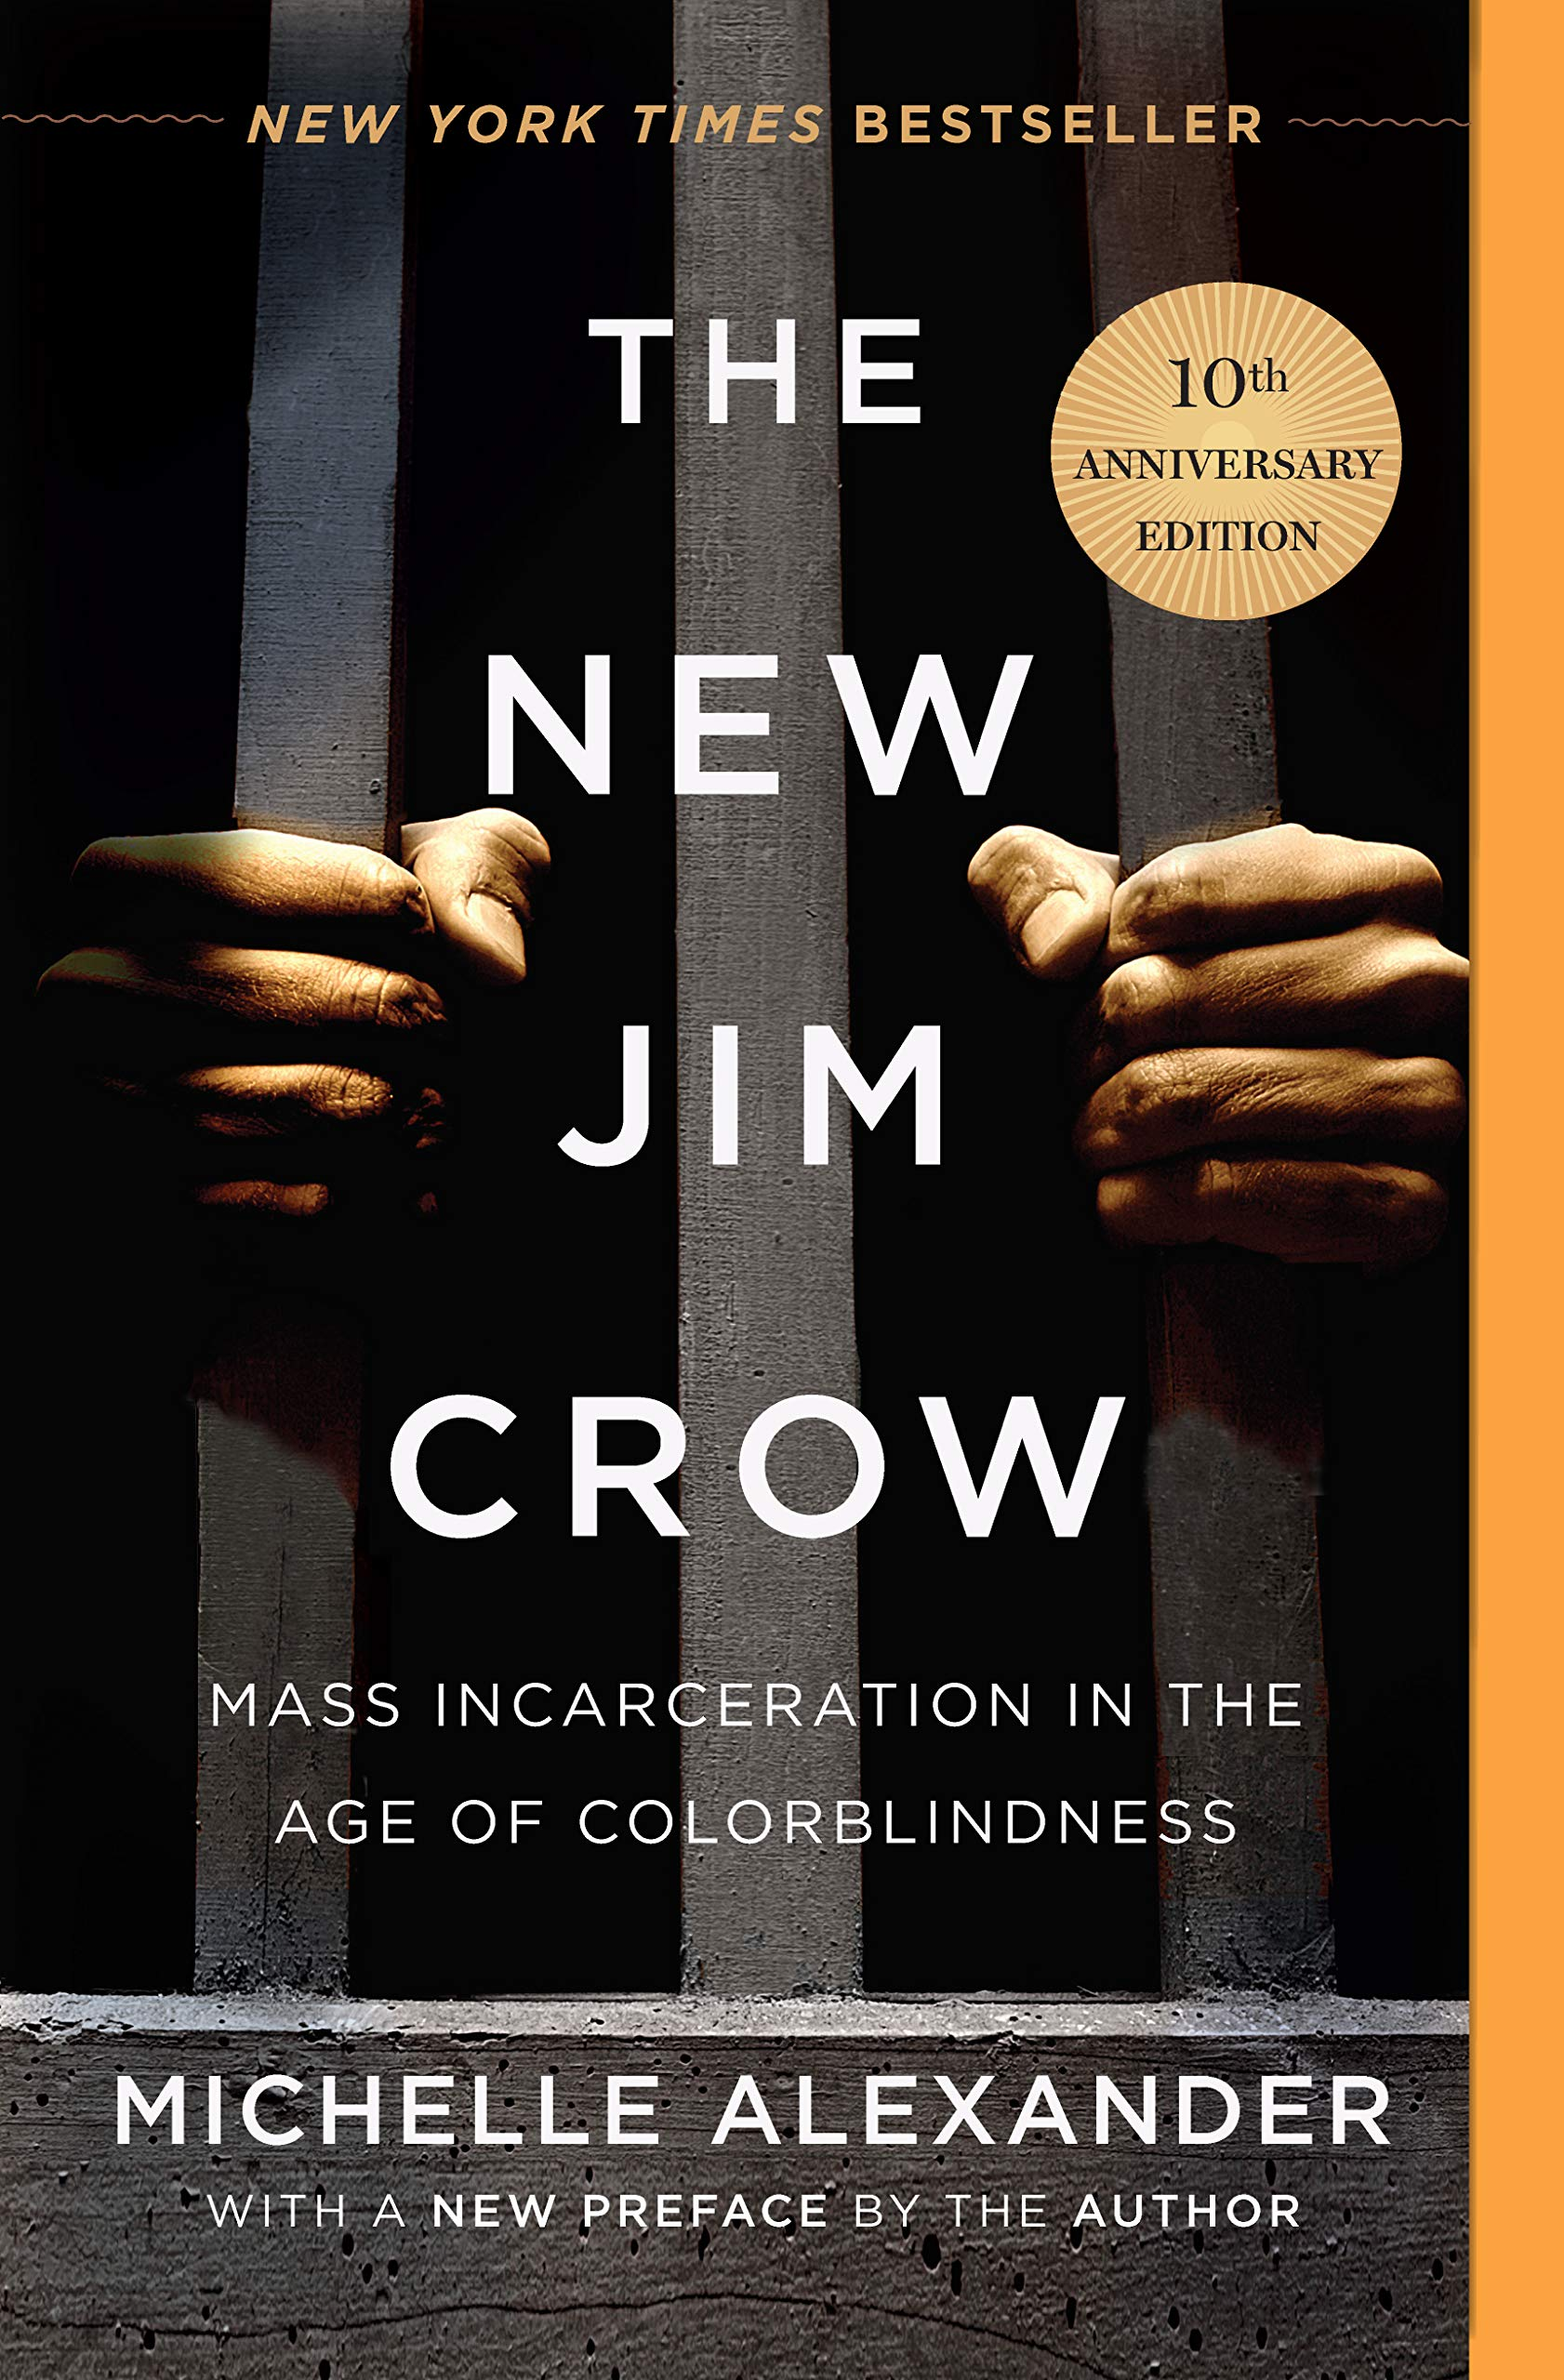 'The New Jim Crow' by Michelle Alexander